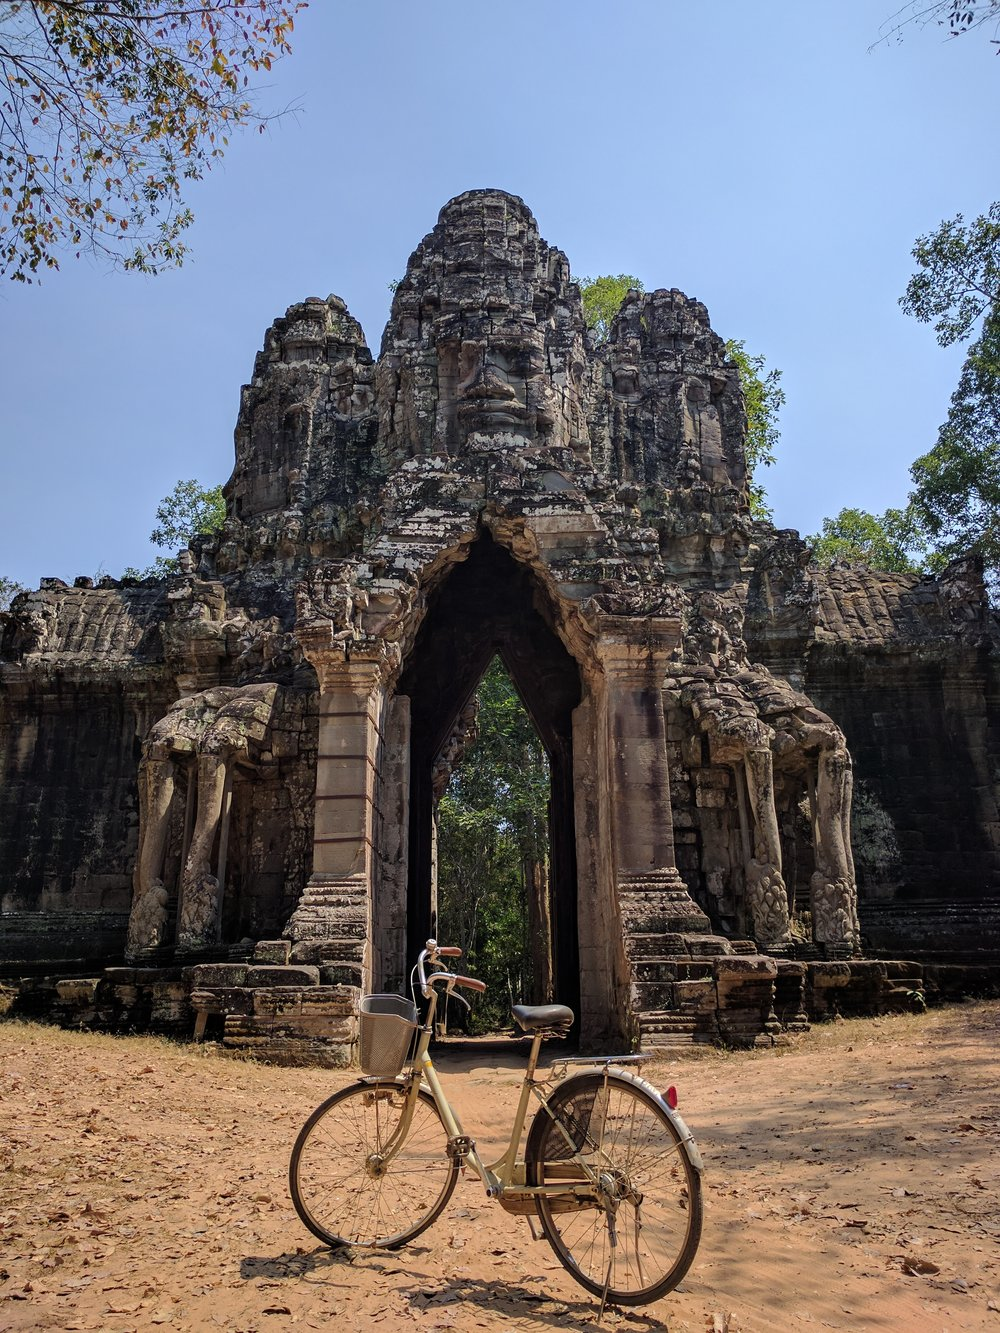 Biking the ancient cities